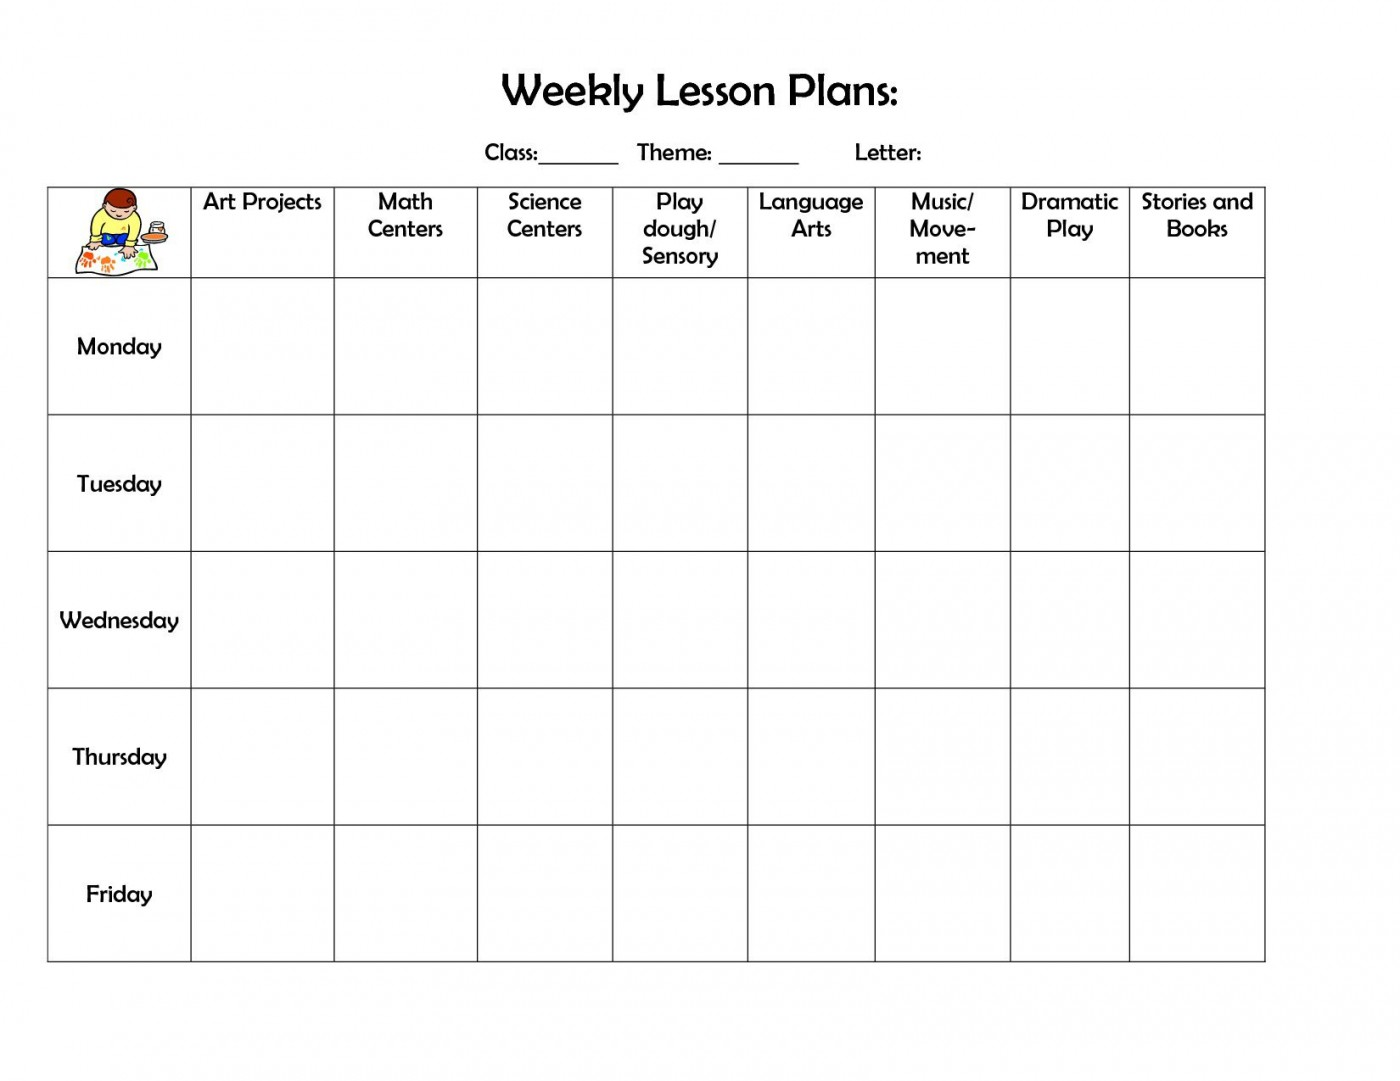 002 Amazing Weekly Lesson Plan Template Inspiration  Blank Free High School Danielson Google Doc1400